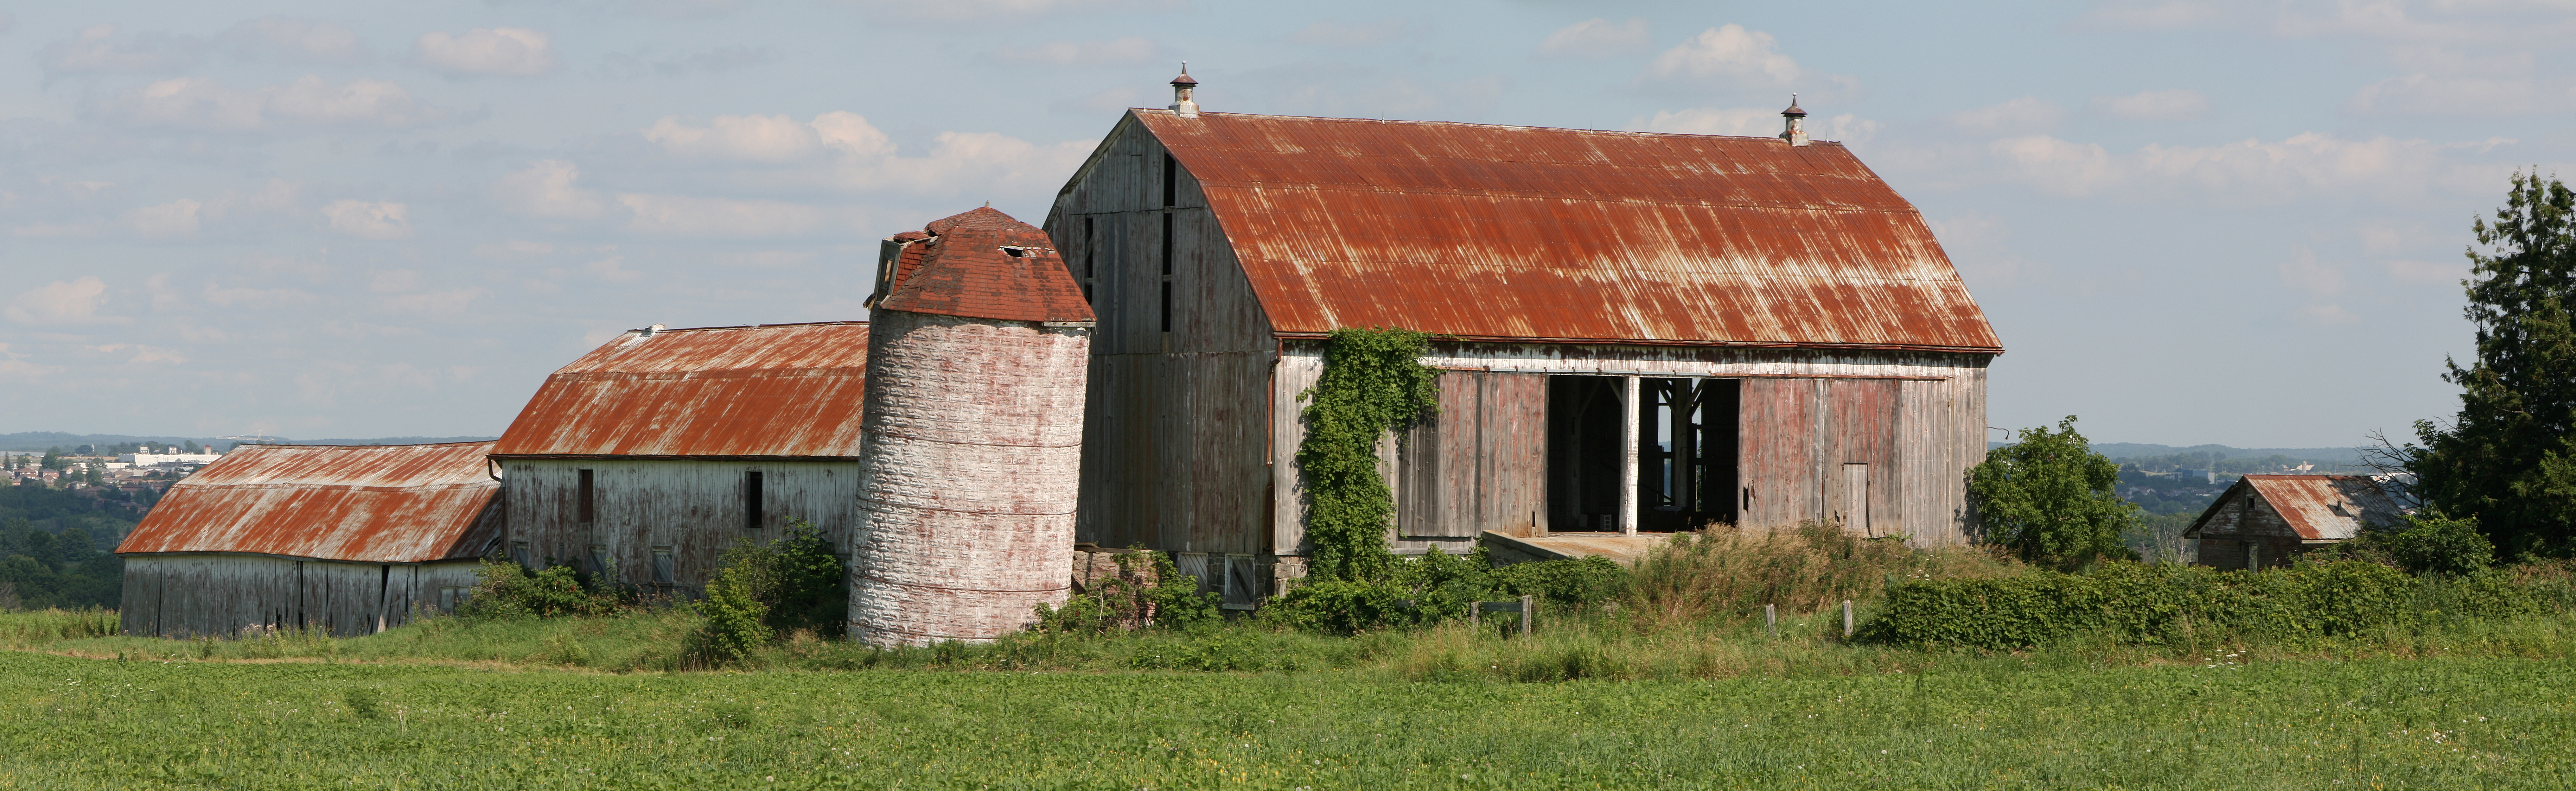 1000+ images about Barns! on Pinterest | Barn homes